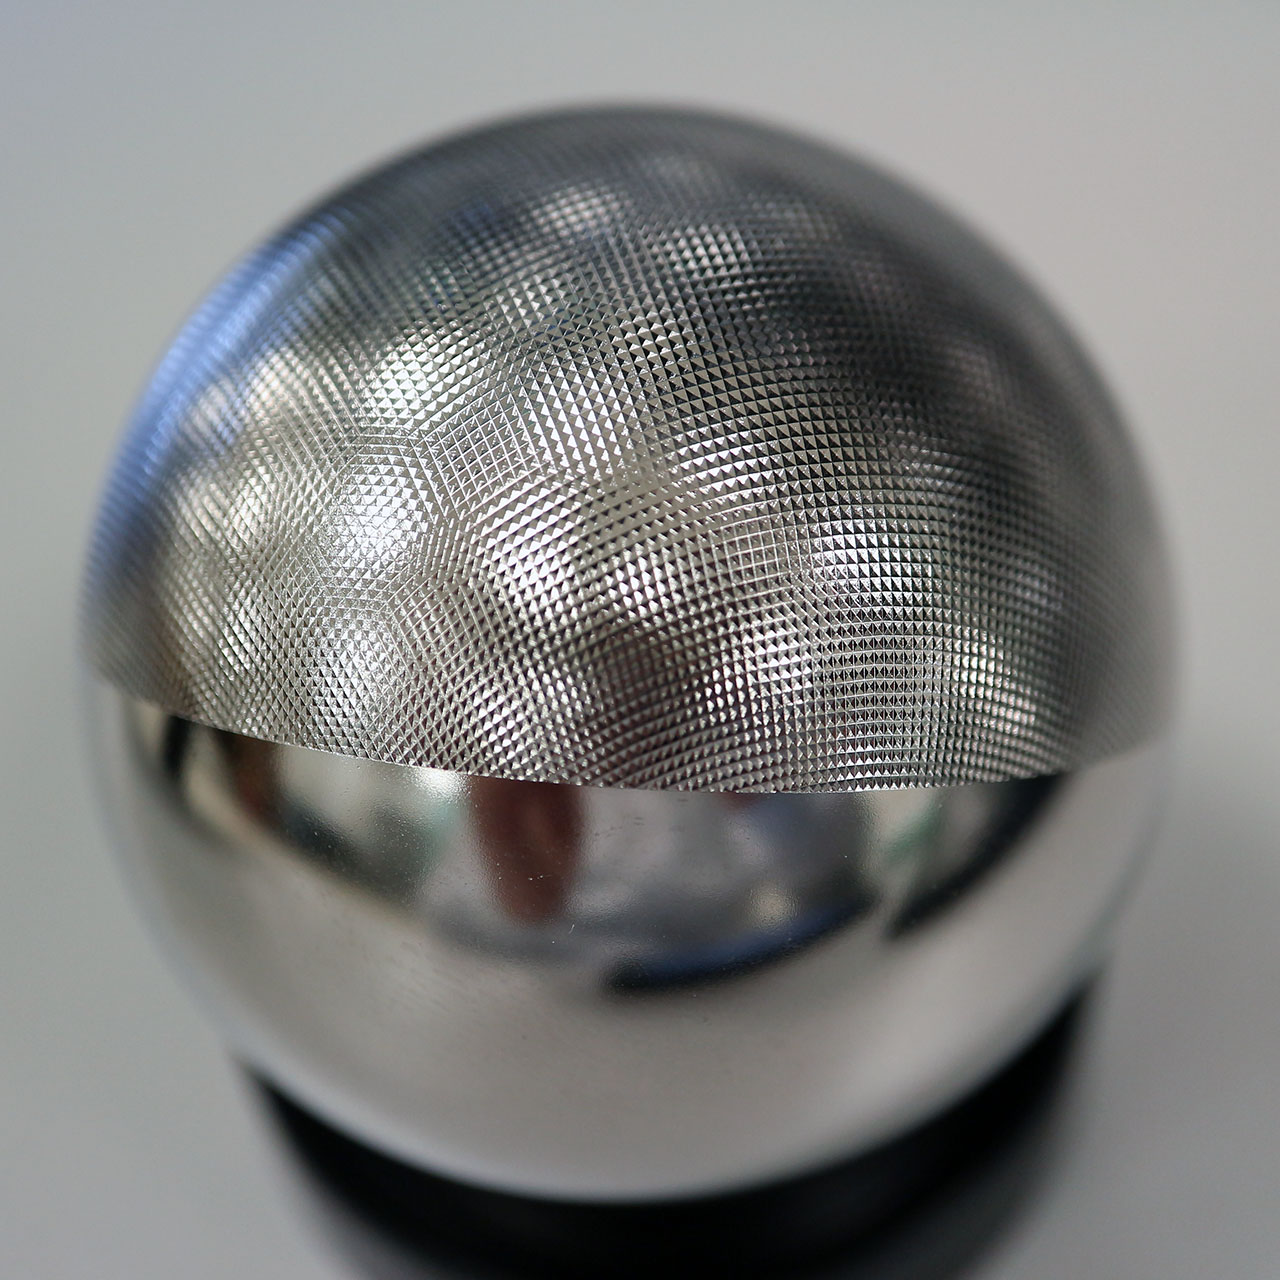 Pyramid texture applied to a 50 mm diameter steel ball.